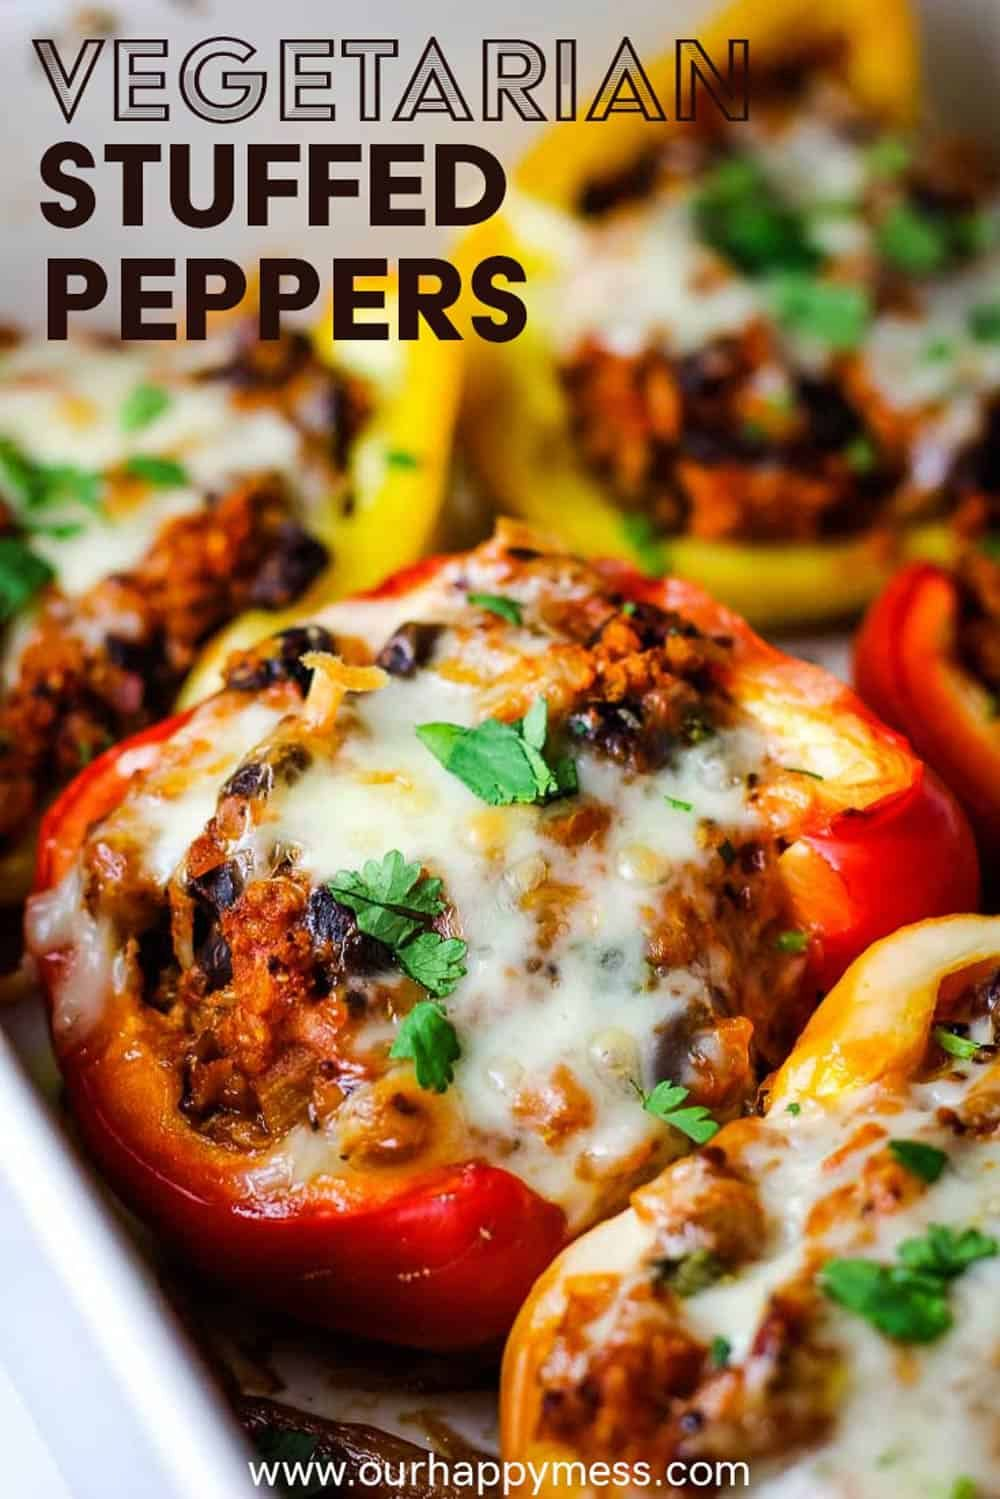 Vegetarian Stuffed Peppers Mexican Style Recipe In 2020 Vegetarian Stuffed Peppers Stuffed Peppers Recipe Vegetarian Stuffed Peppers